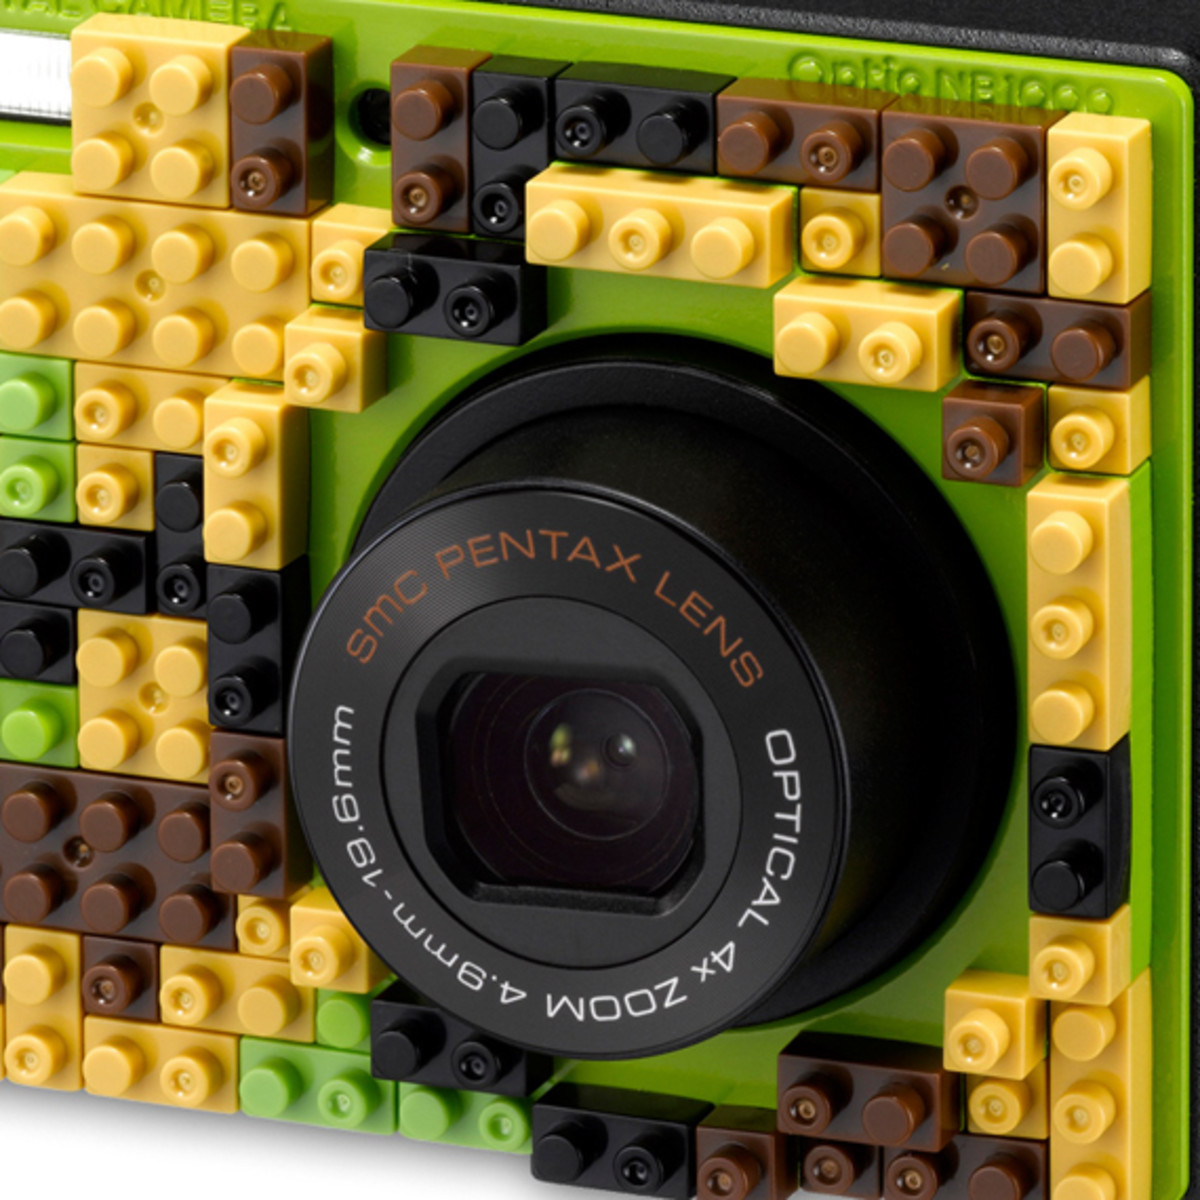 nanoblock-pentax-optio-nb1000-green-04